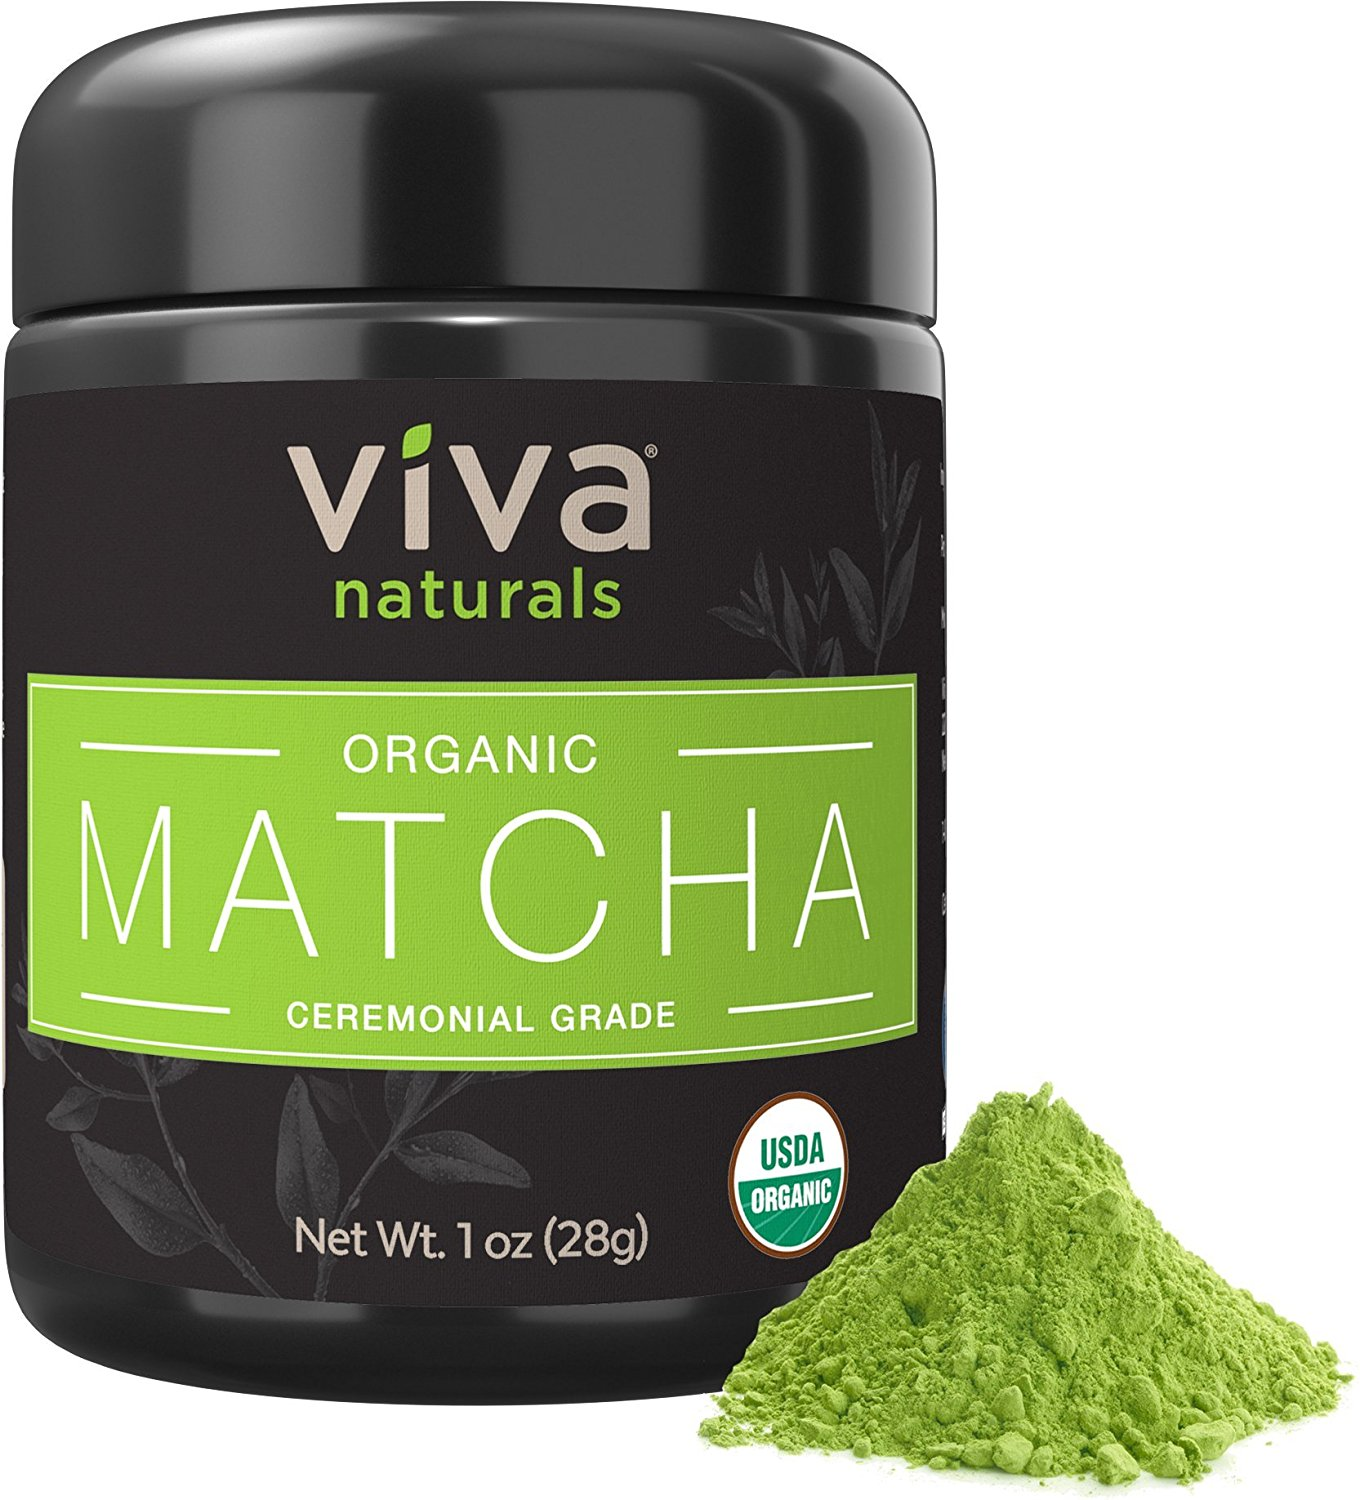 Viva Naturals Organic Matcha Green Tea Powder [1 oz] - Japanese Ceremonial Grade for Lattes